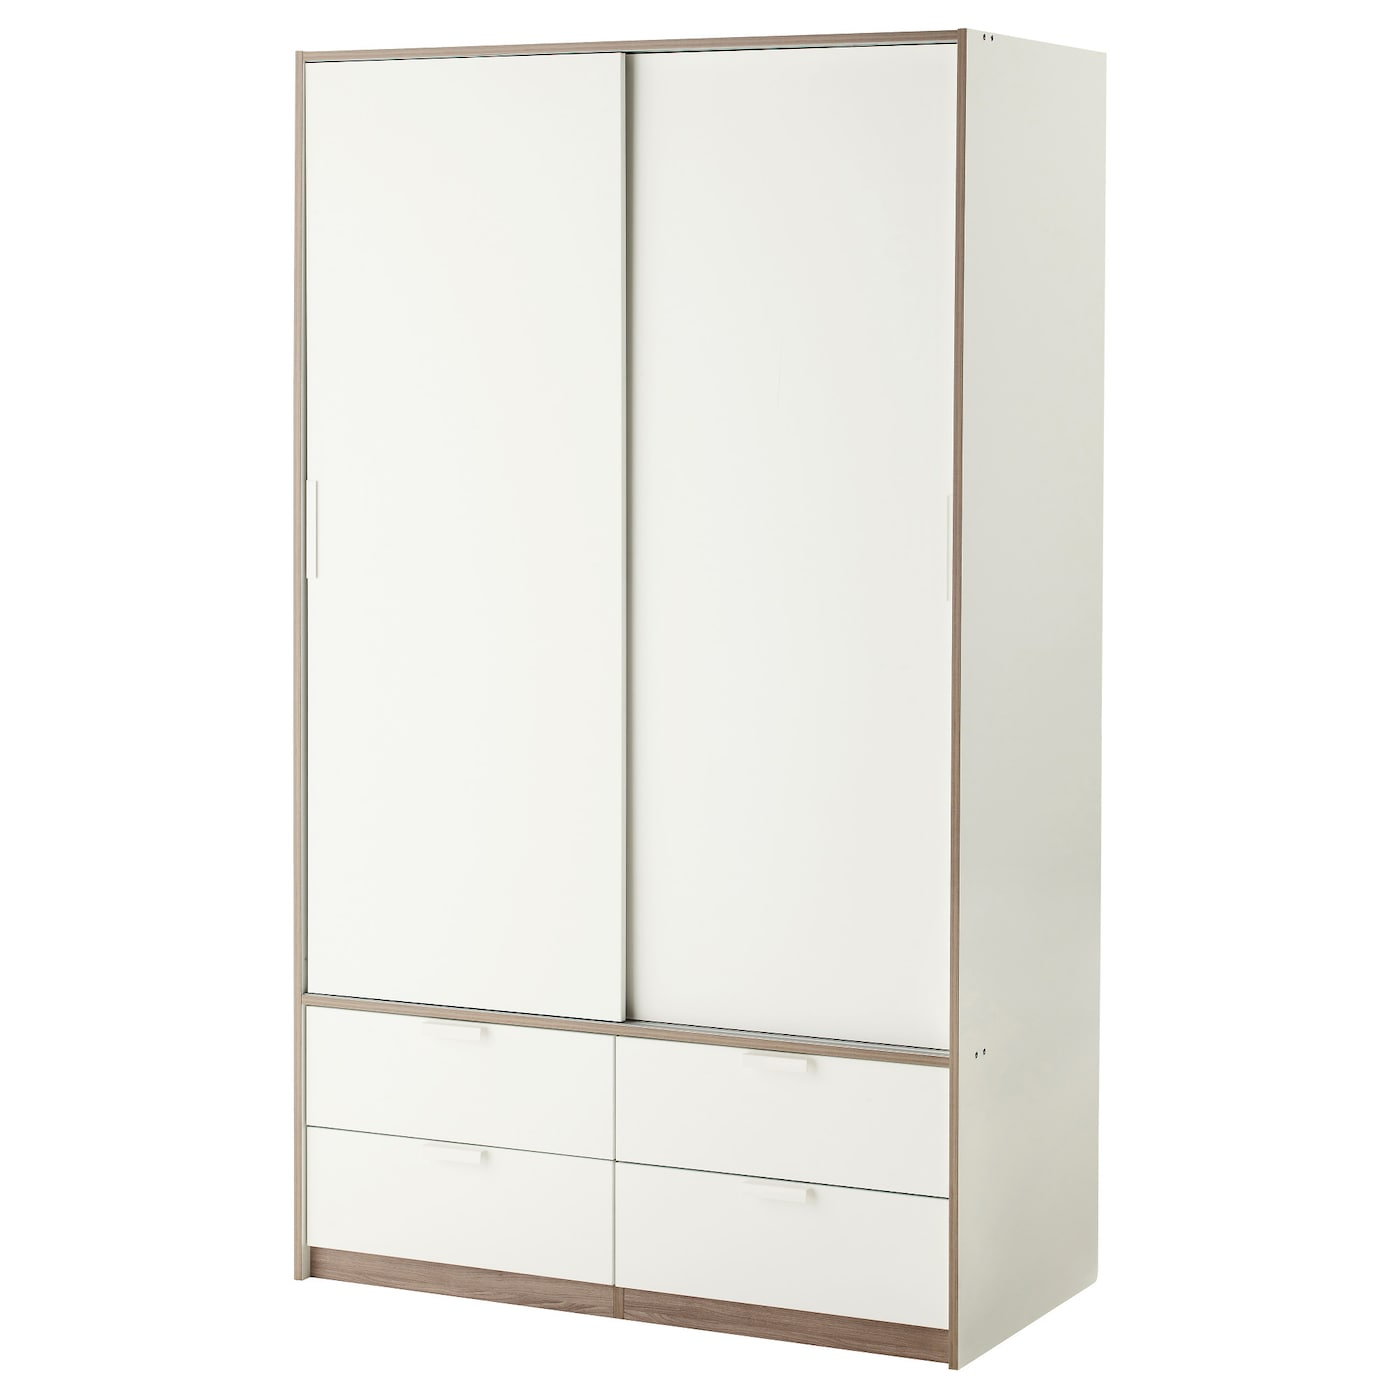 Trysil wardrobe w sliding doors 4 drawers white 118x61x202 for Spiegel 80 x 180